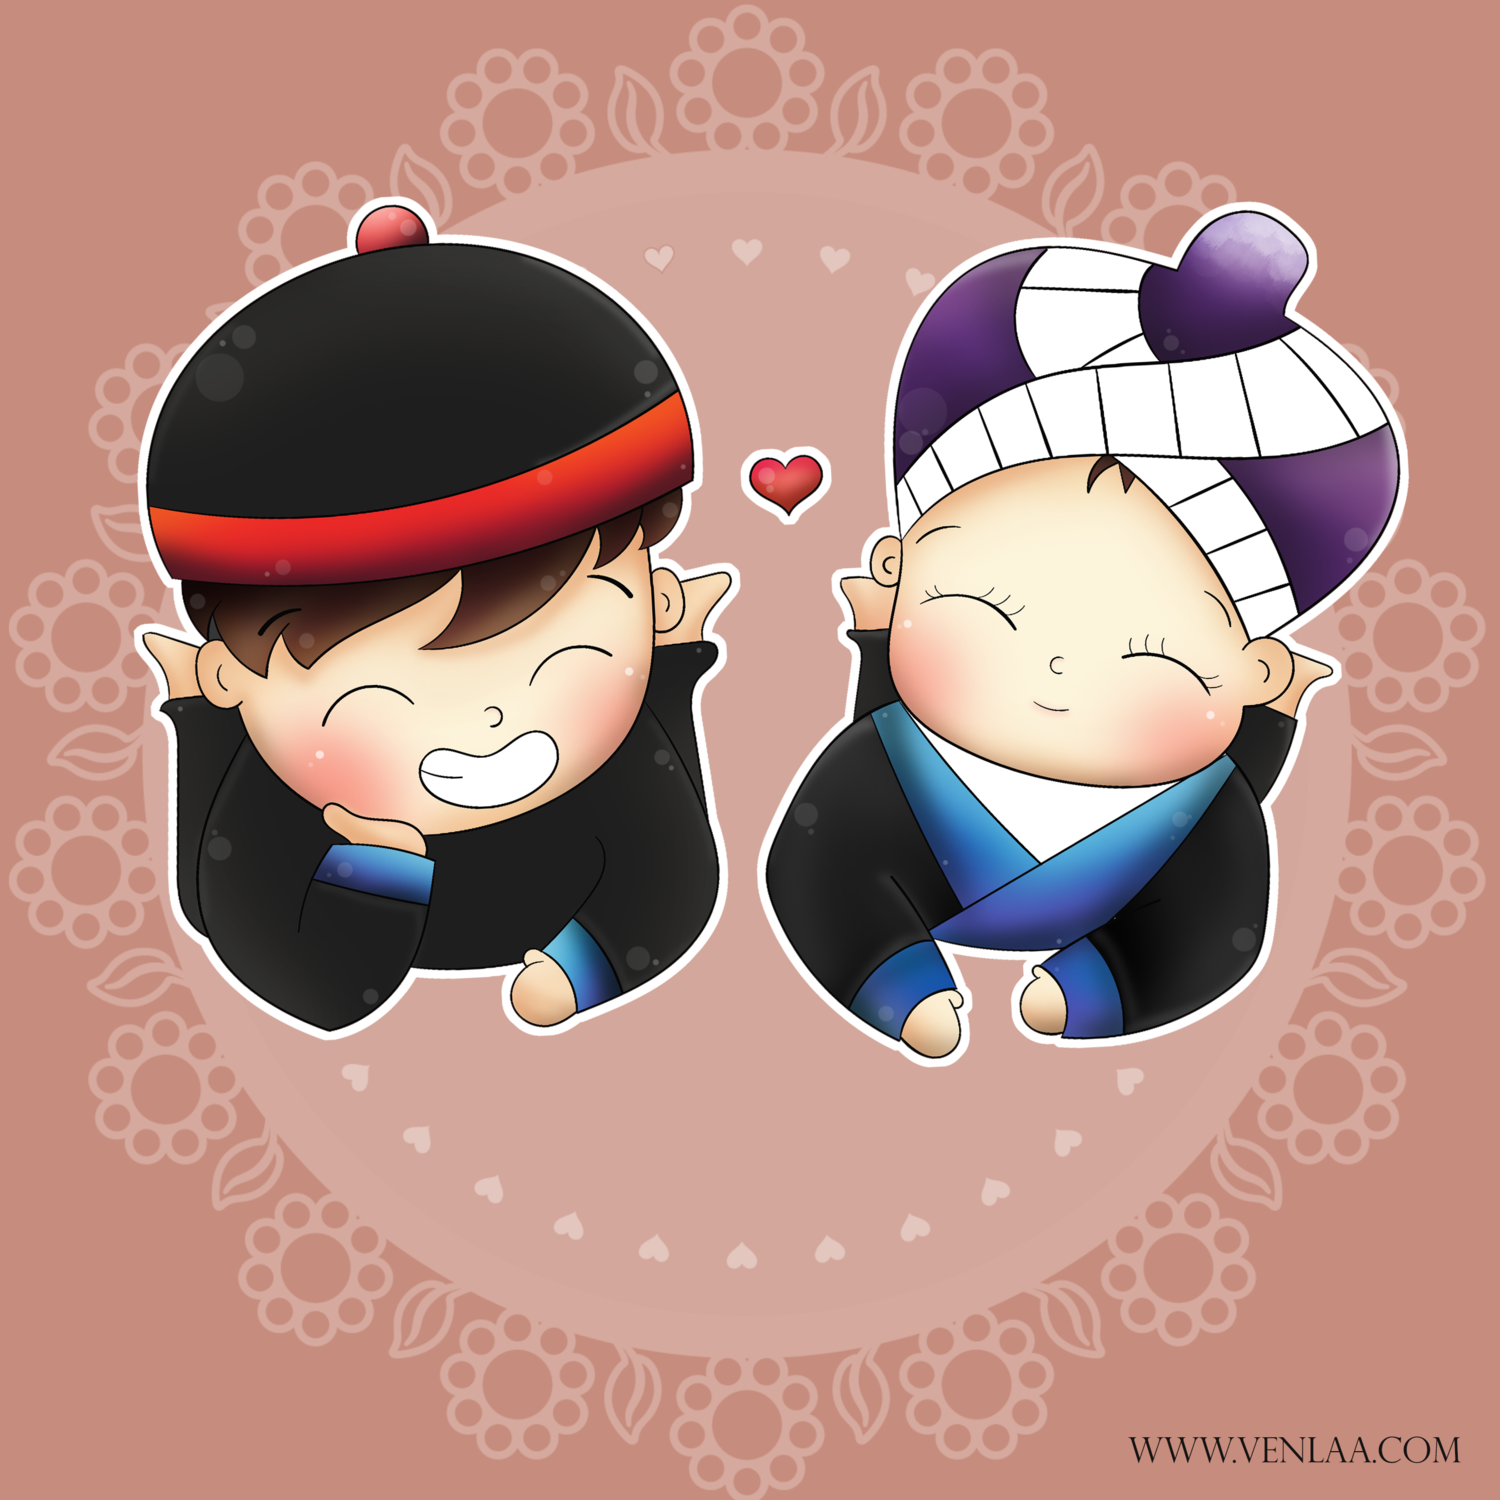 venlaa-hmonggycouple-background-square2015.png